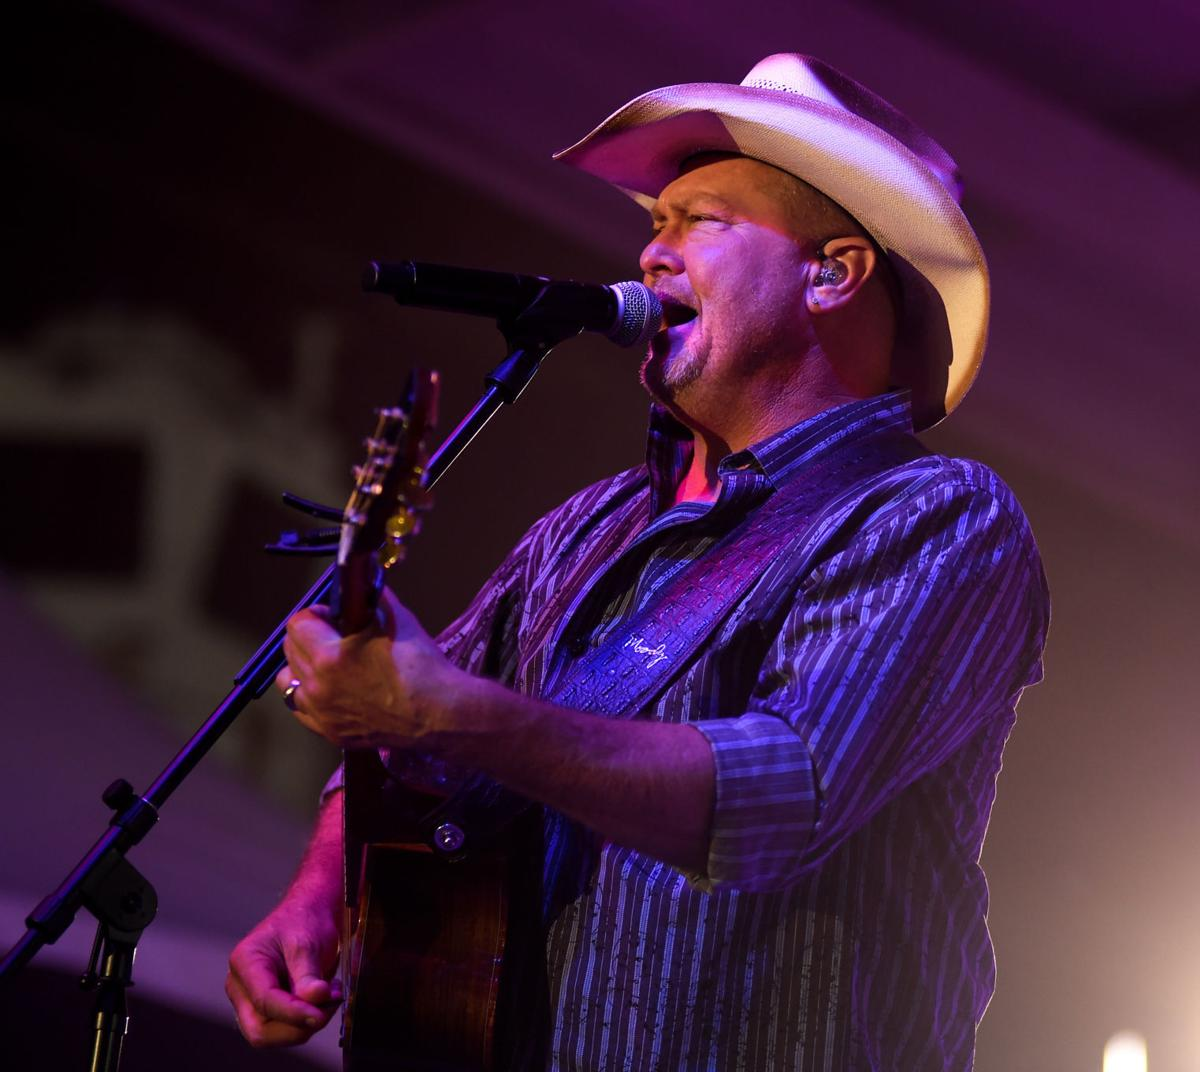 190824_drc_ac_Tracy Lawrence_05.jpg